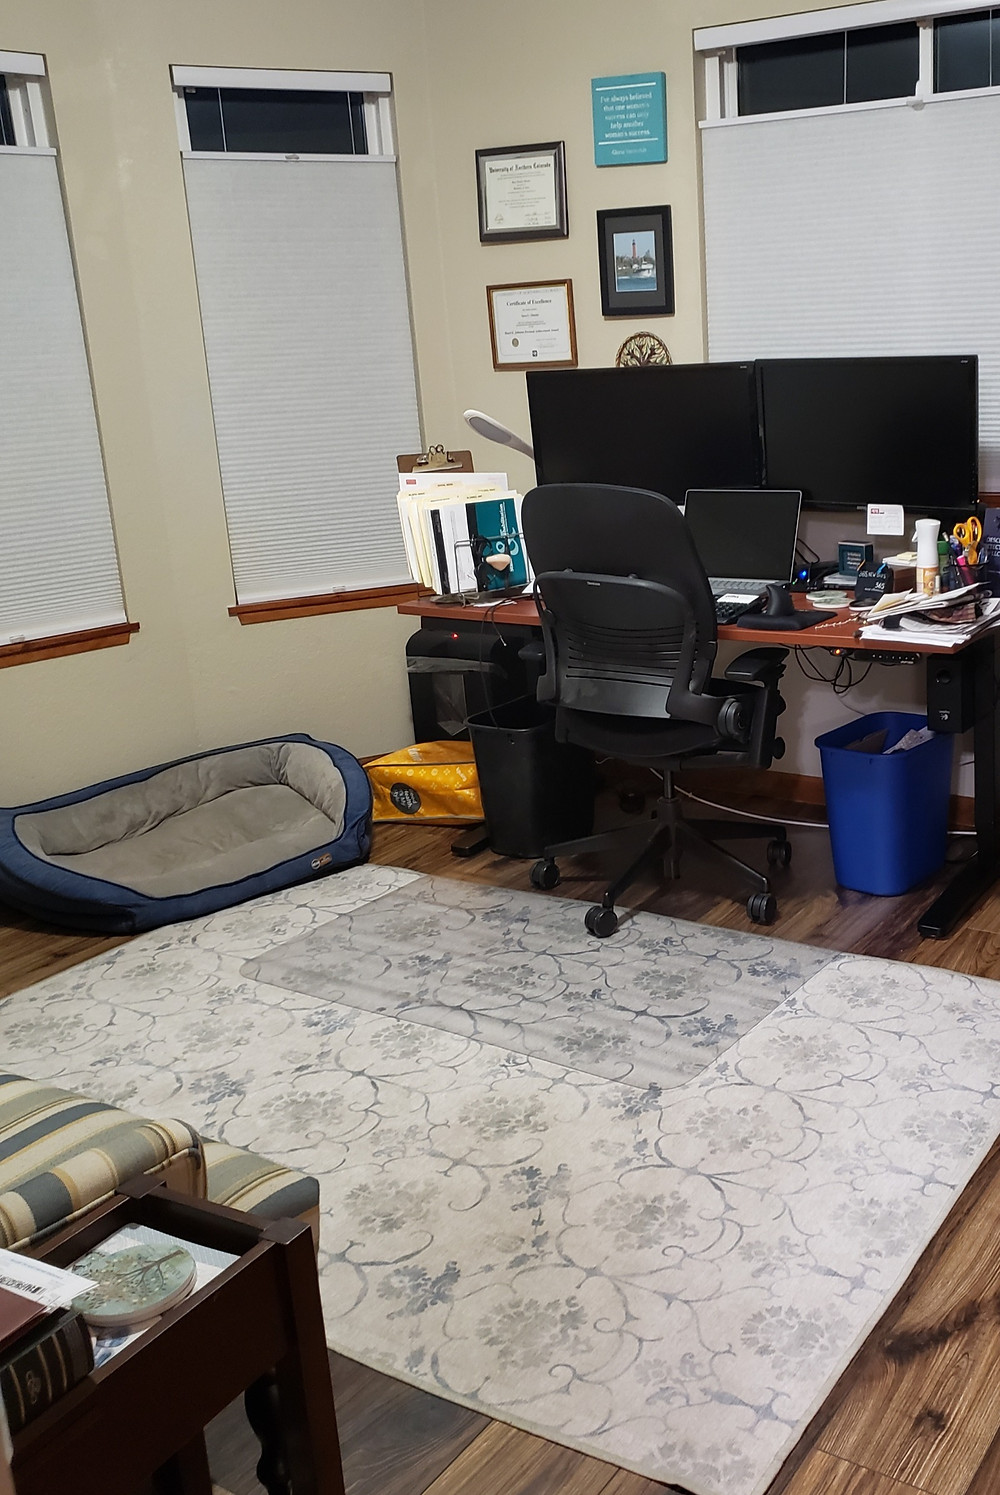 Home office showing desk with laptop and two computer monitors, desk chair, rug, dog bed, and corner of comfy chair